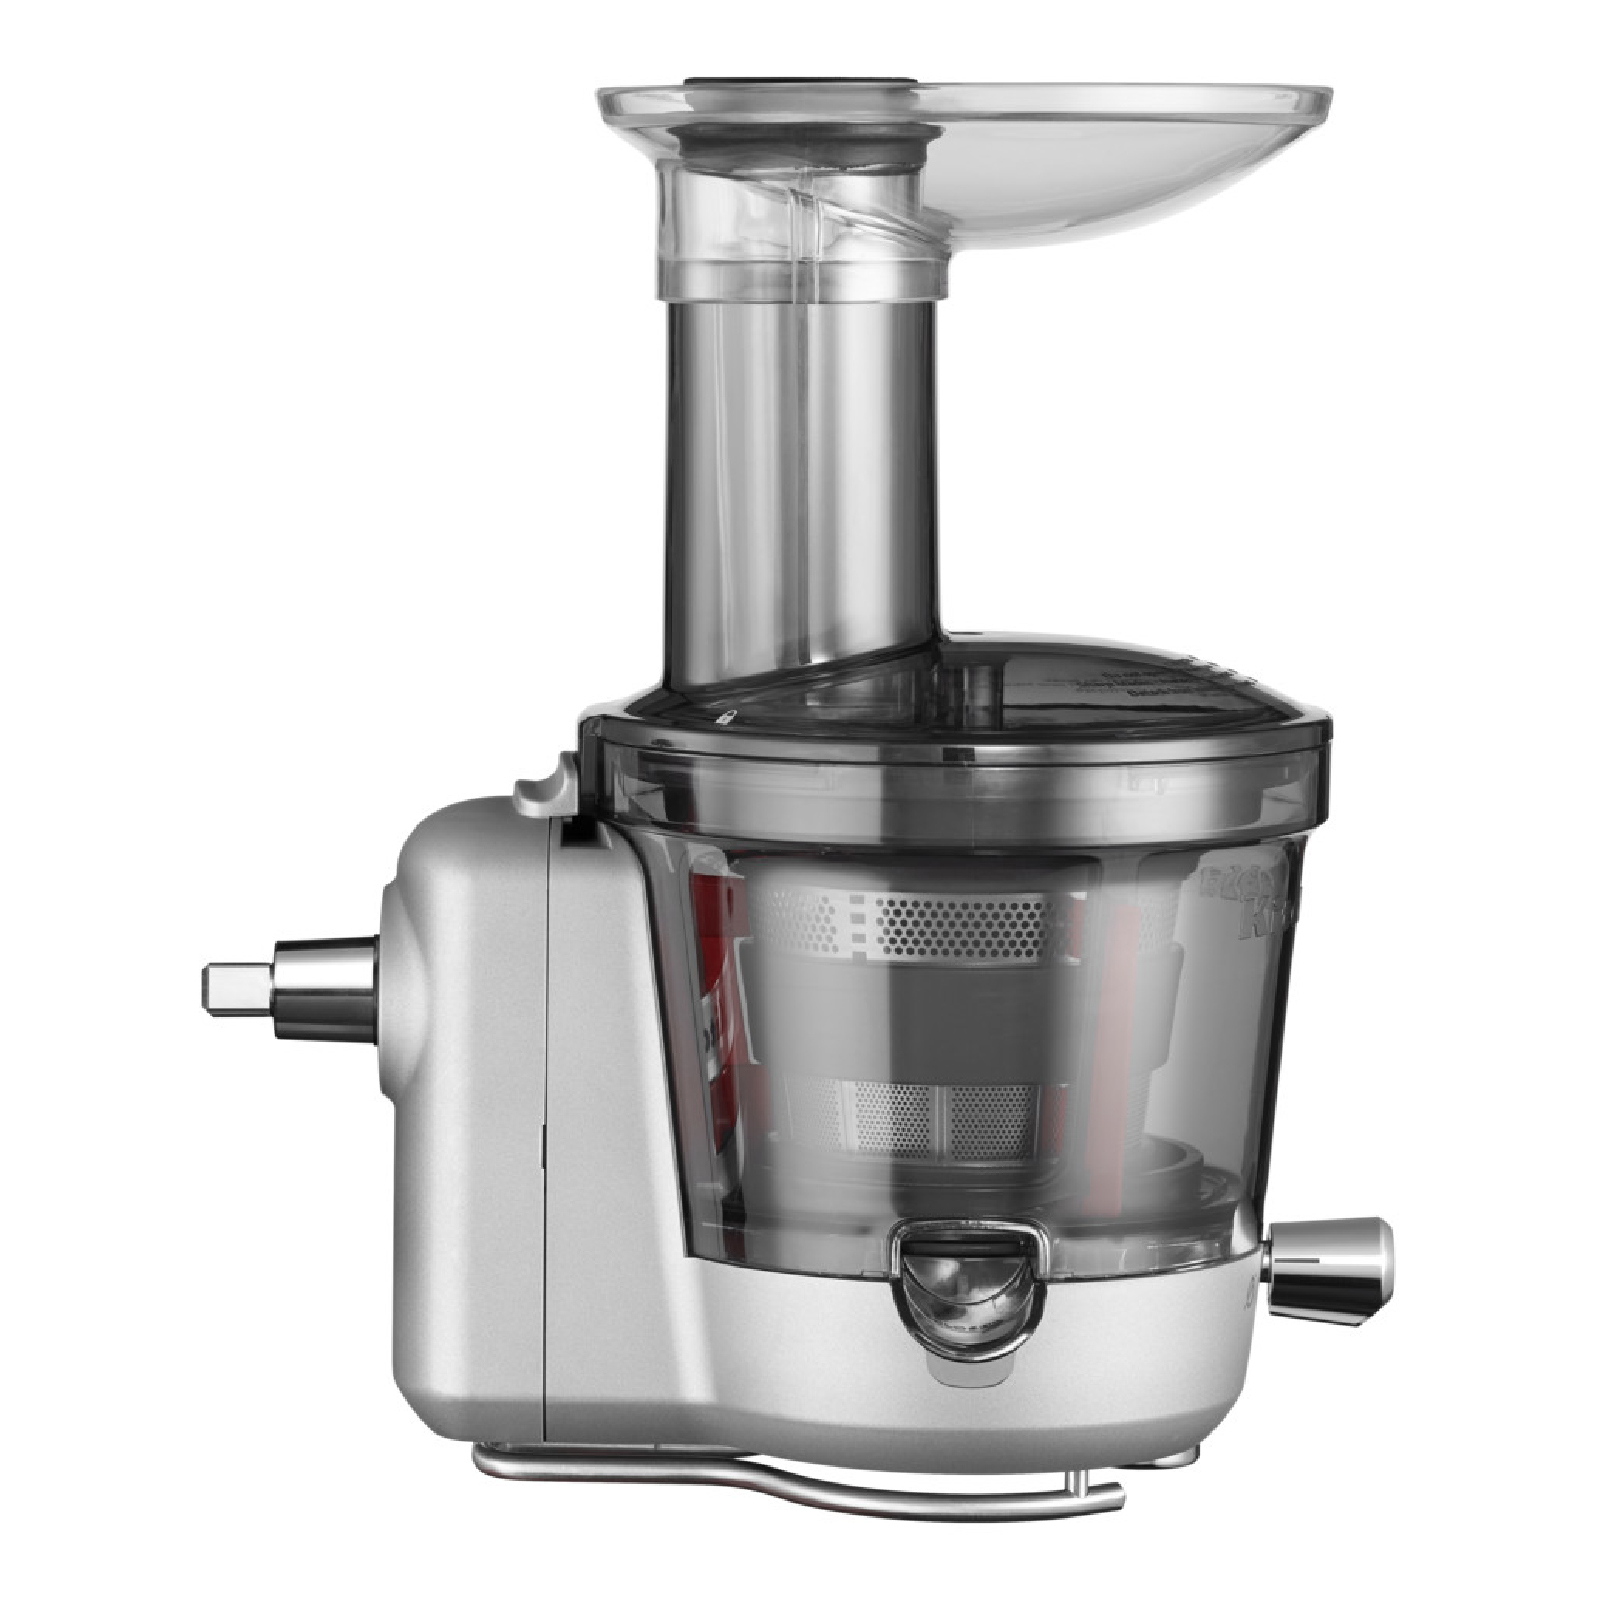 Kitchenaid Maximum Extraction Slow Juicer Review : KitchenAid 5KSM1JA Maximum Extraction Slow Juicer and ...